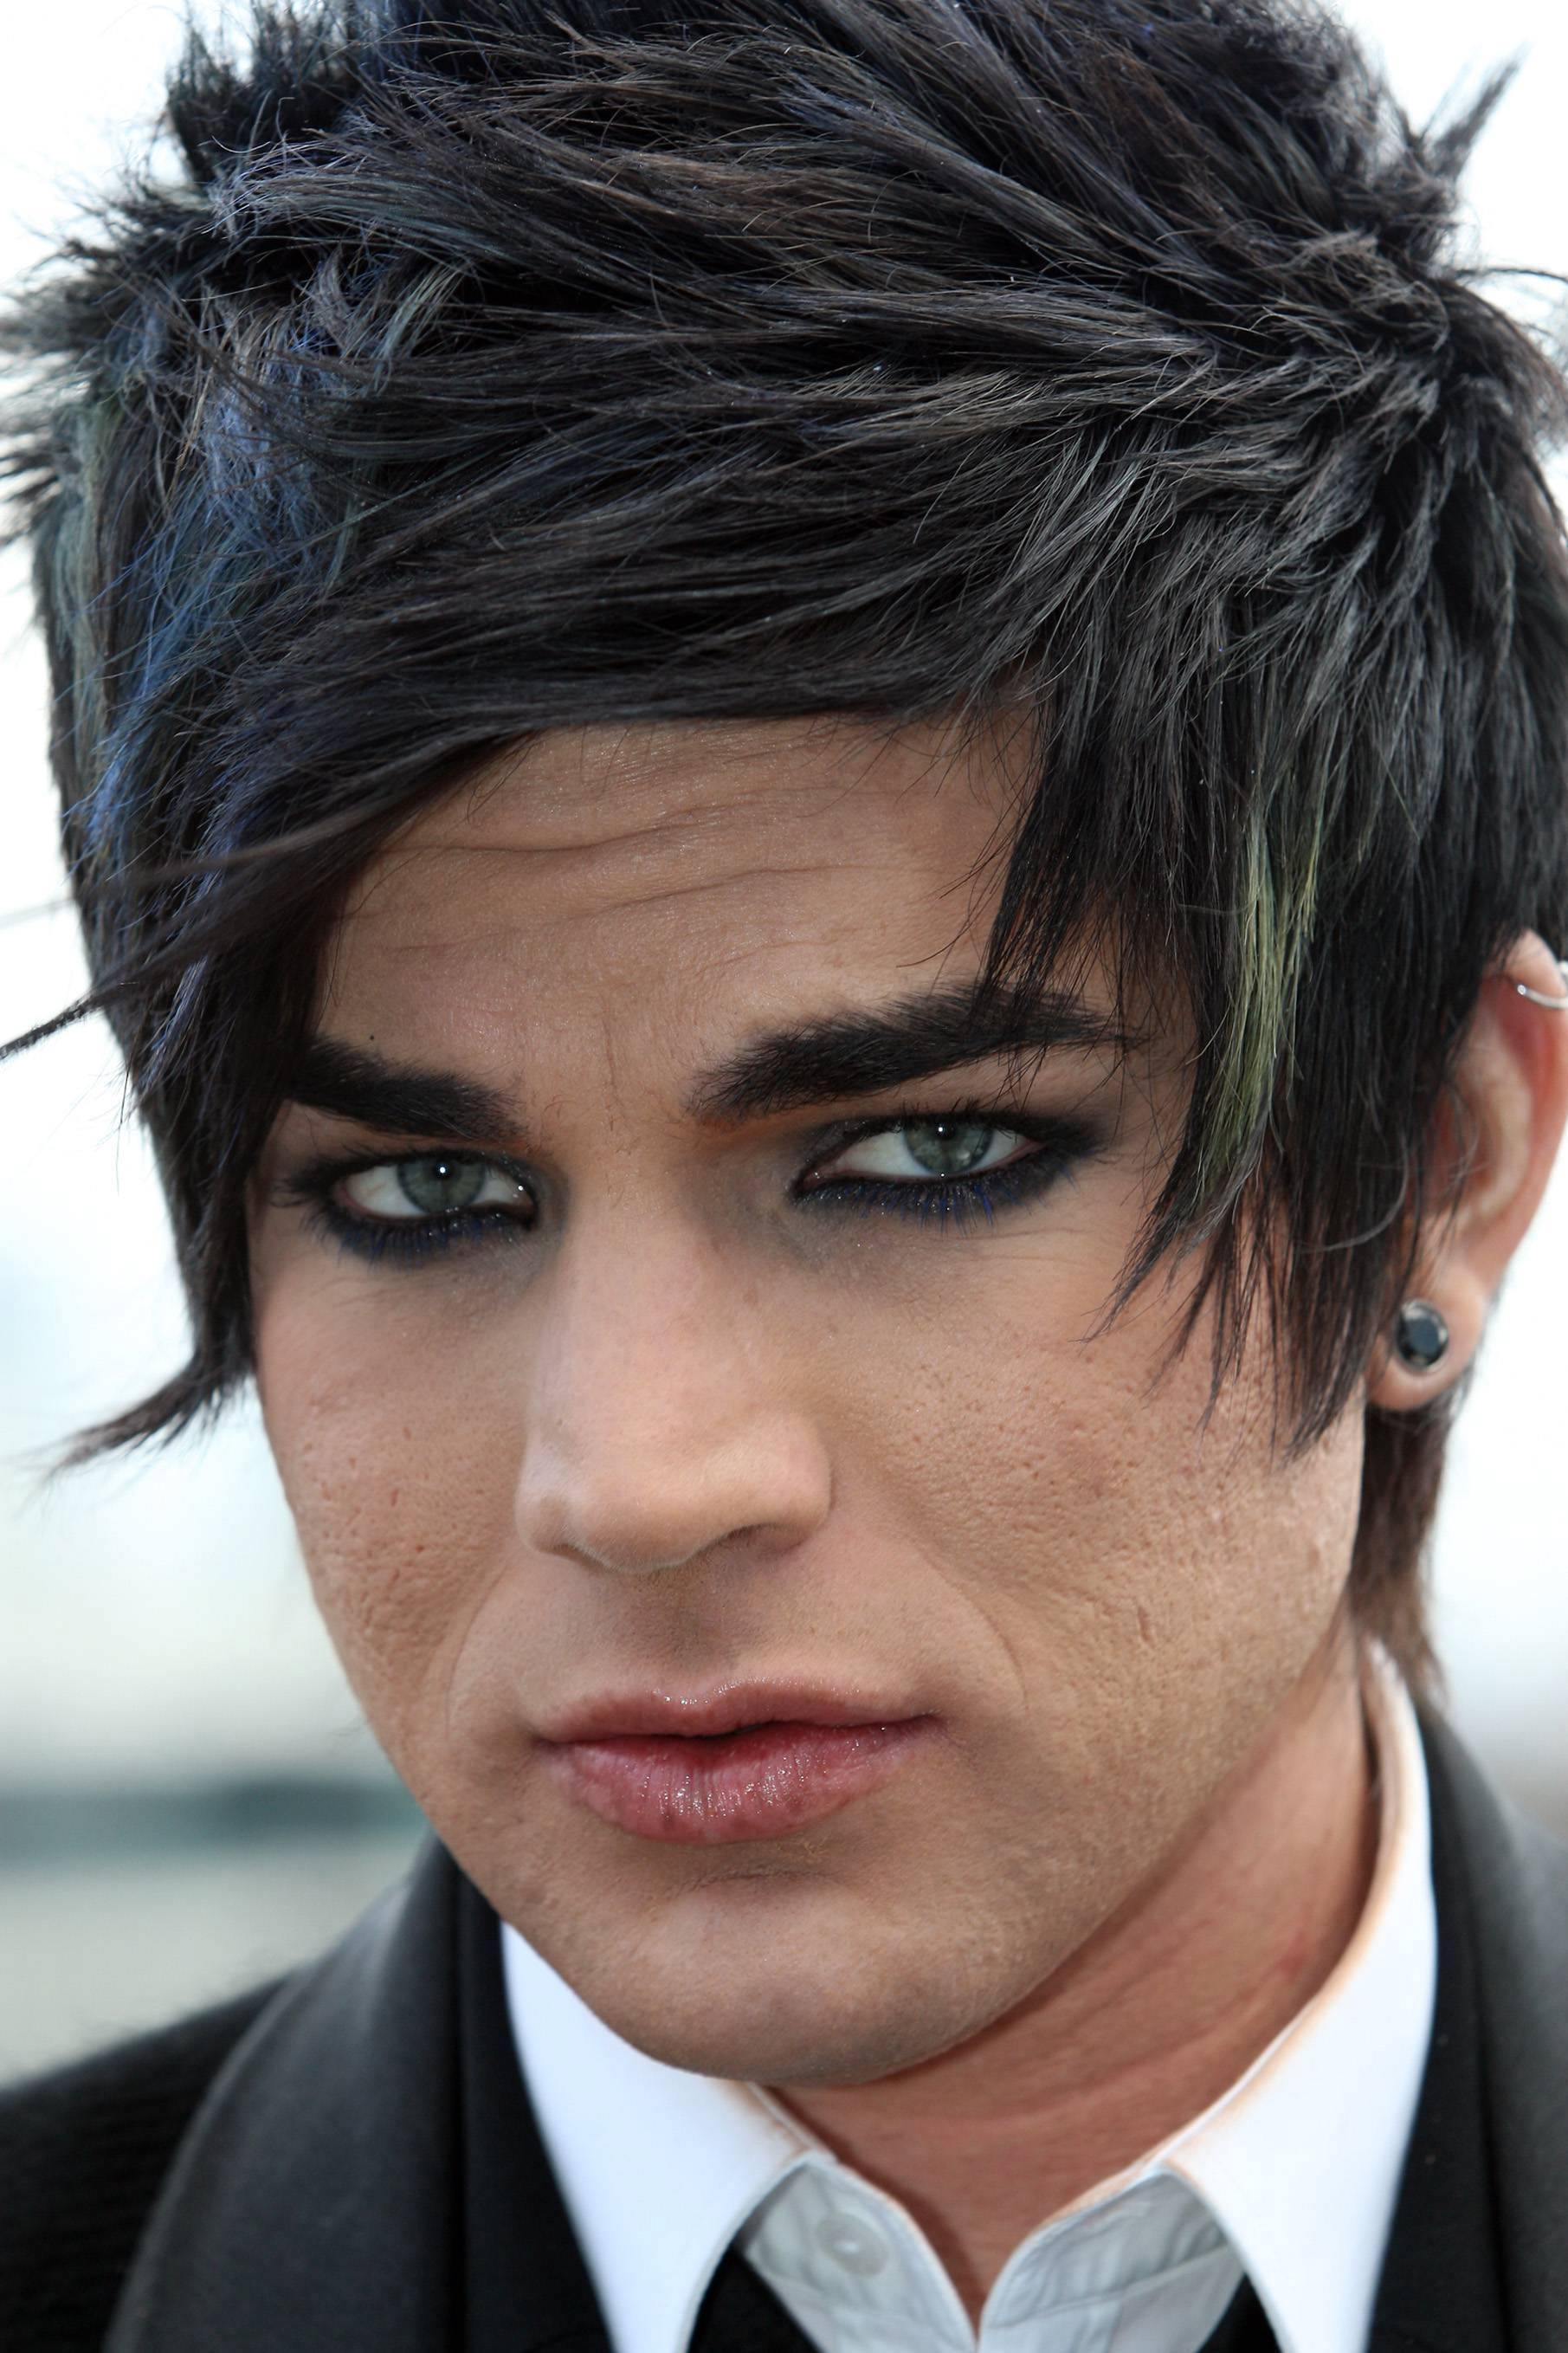 Mac Makeup Wallpaper Iphone Adam Lambert Wallpapers High Quality Download Free